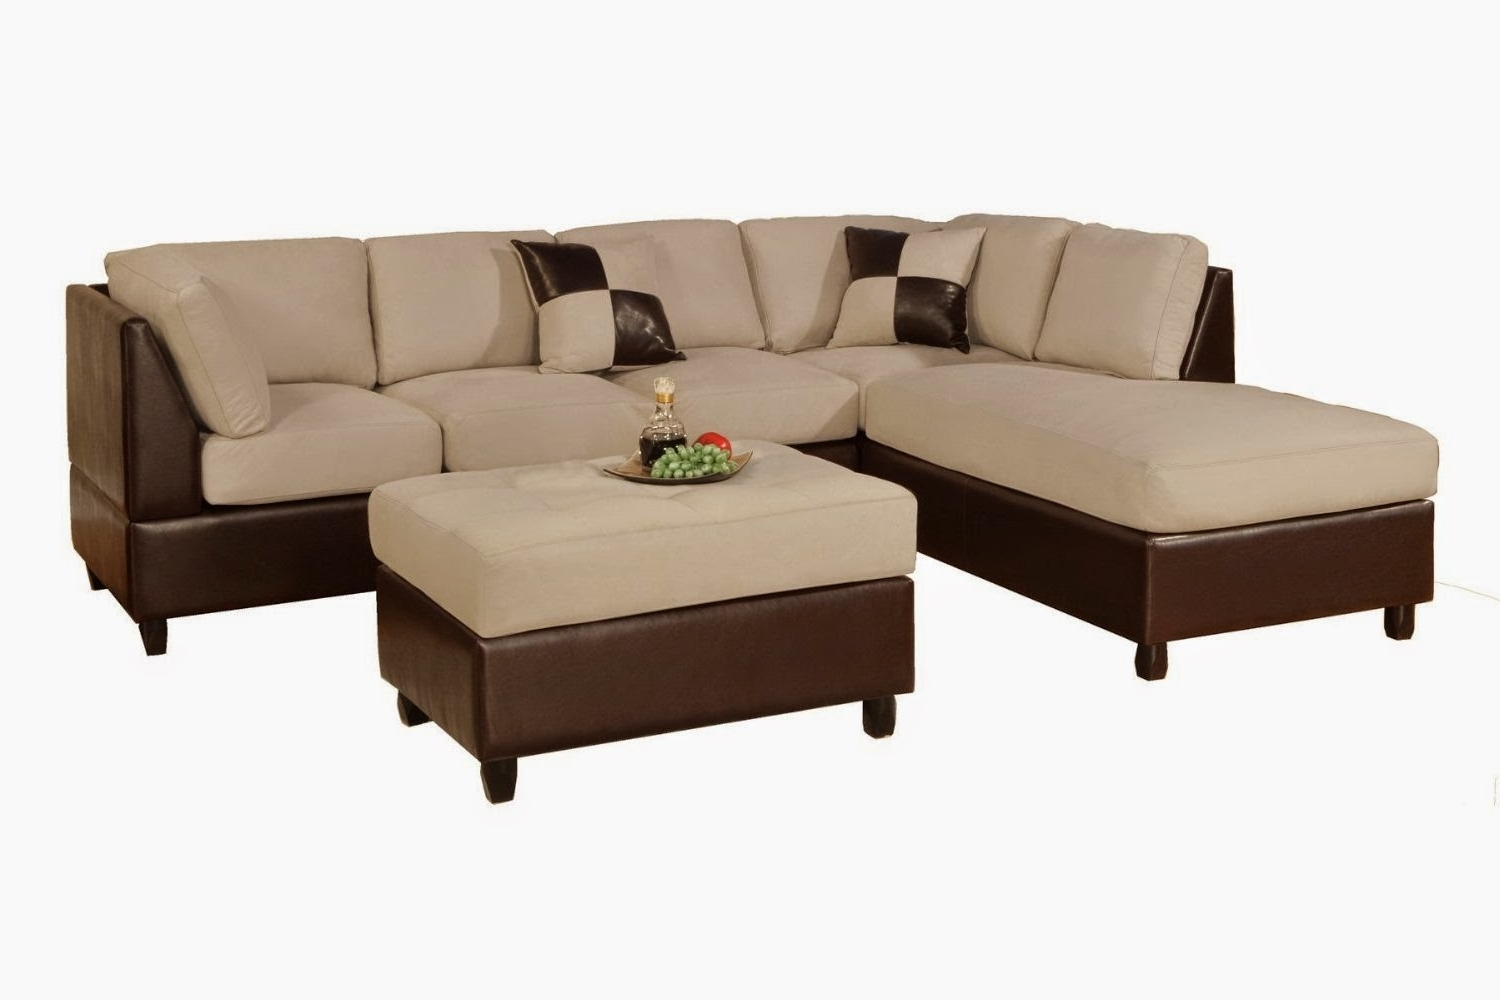 Latest Philippines Sectional Sofas Throughout Peterborough Swansea Philippines Nice Philippine Rightmove (View 5 of 20)